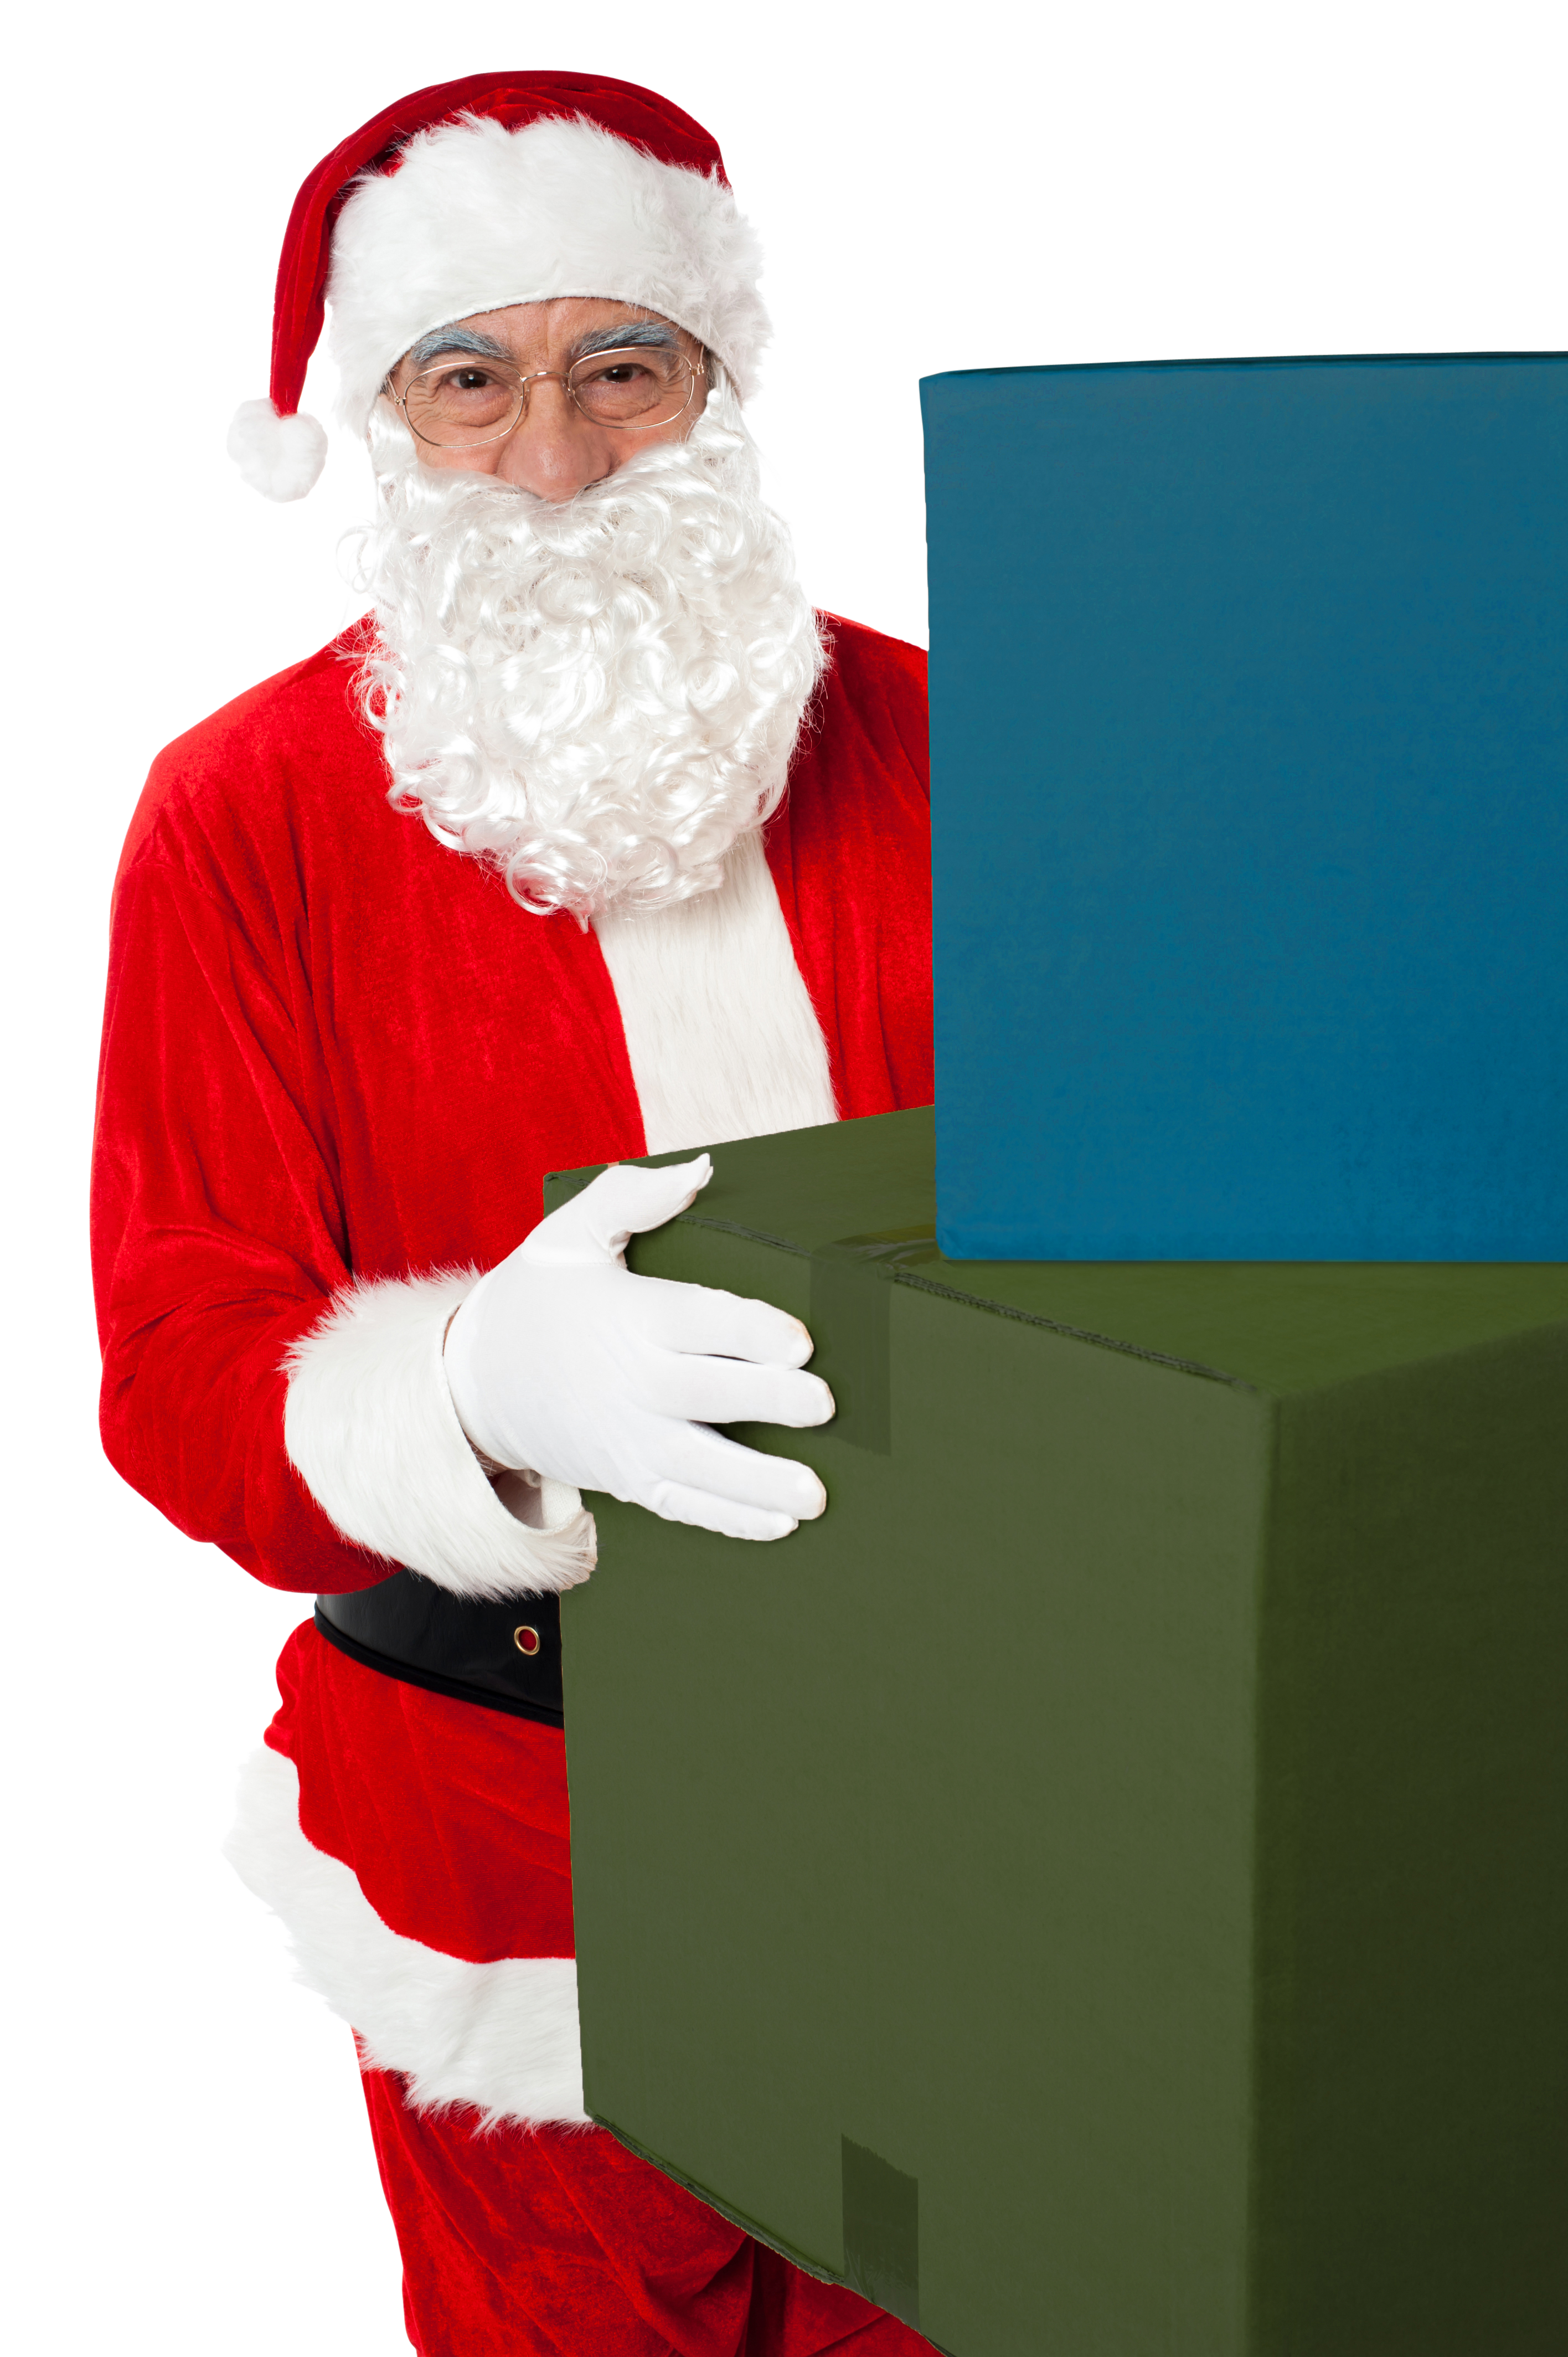 Santa Claus Holding Boxes PNG Image